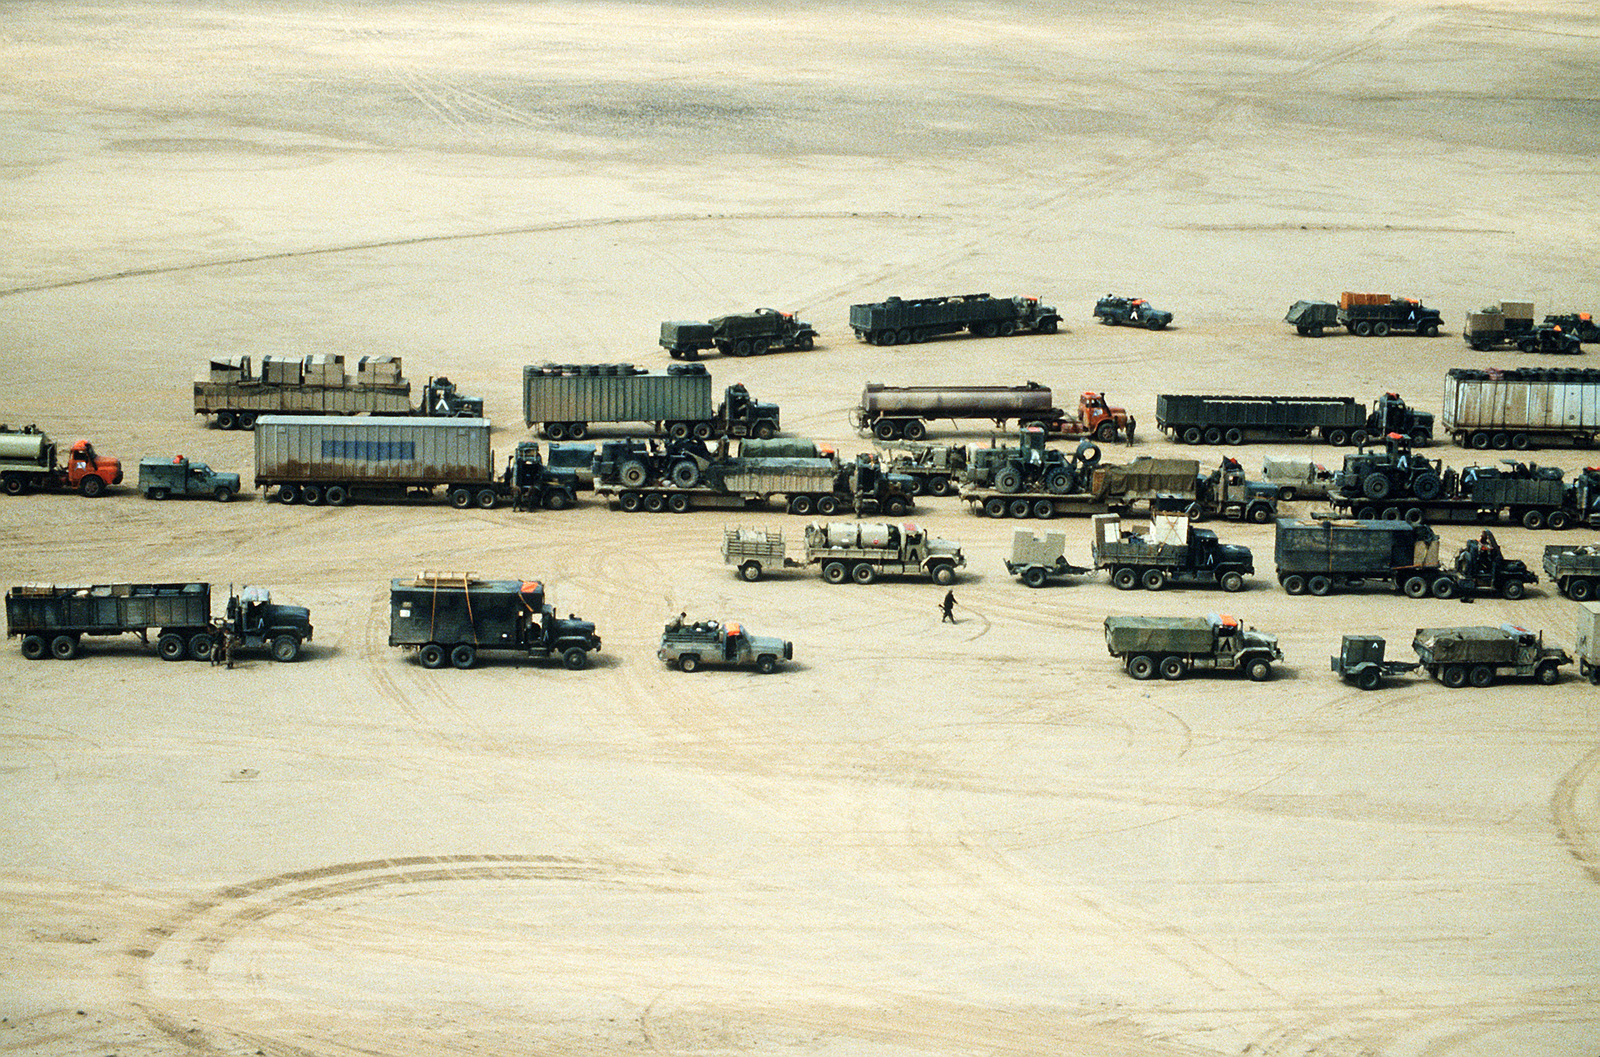 A 24th Infantry Division convoy approaches the Iraqi border during Operation Desert Storm